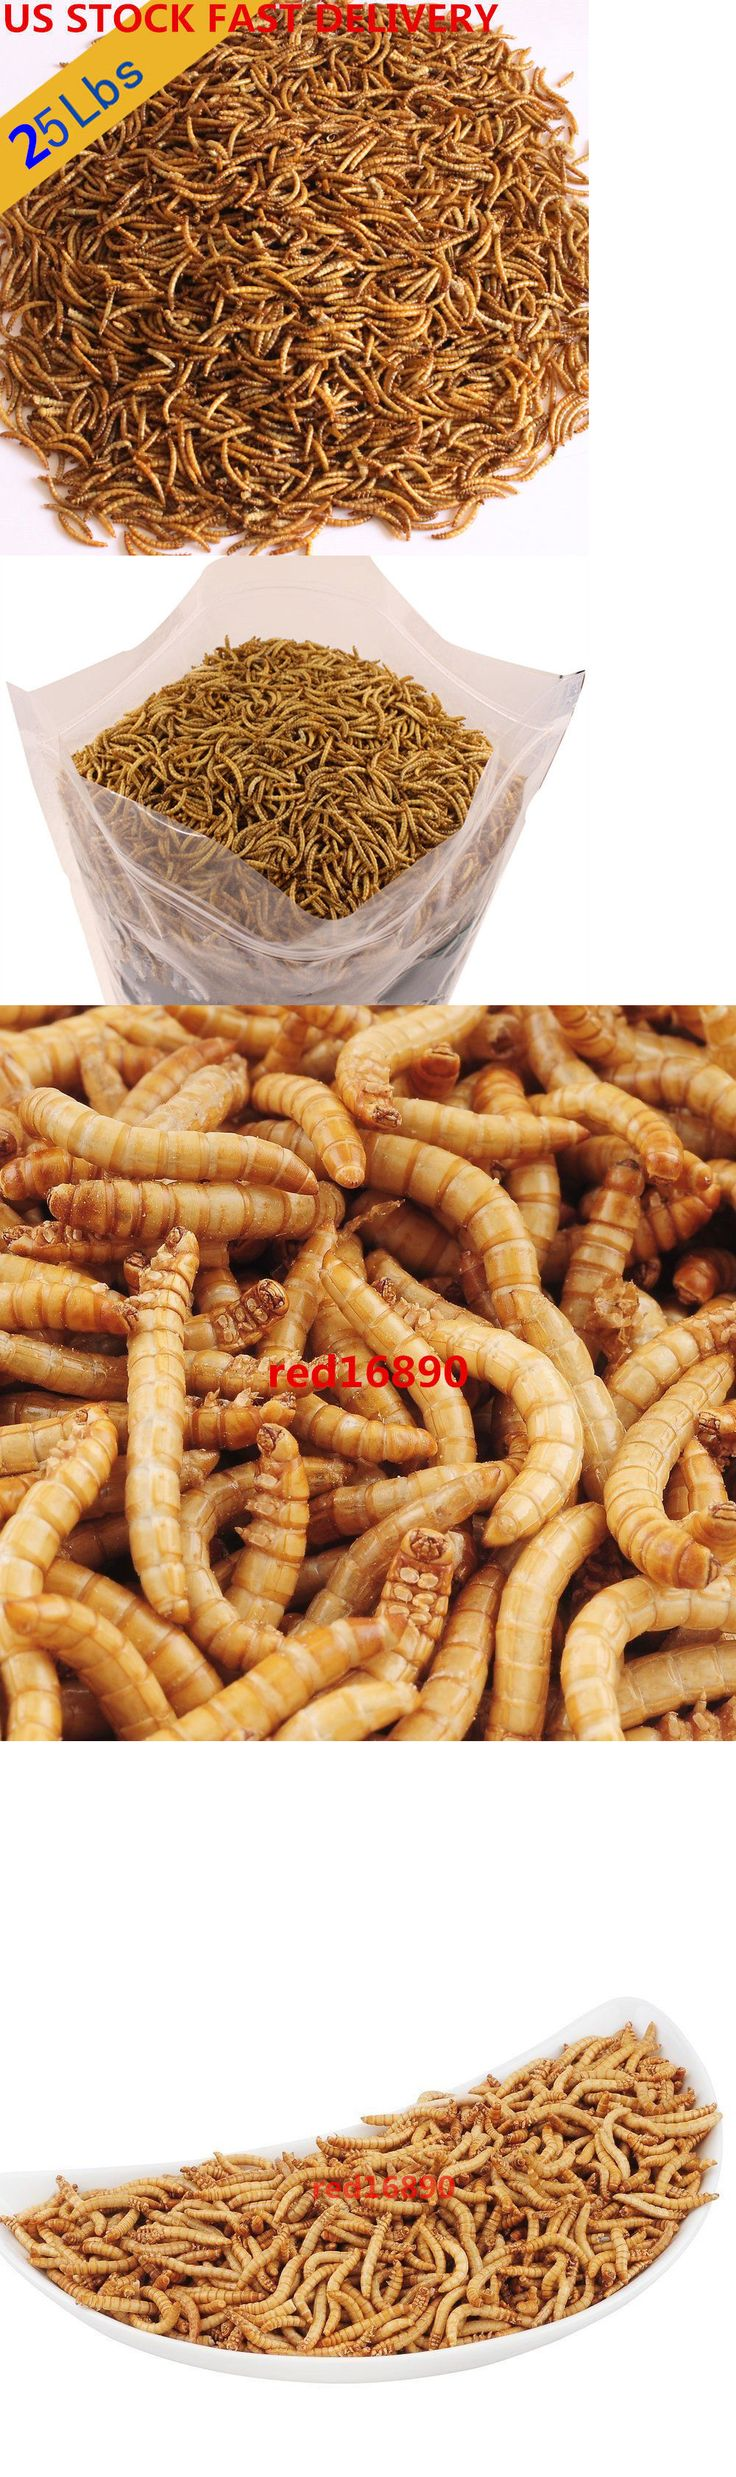 Food and Treats 116494: 25Lbs Us Stock 11.25Kg Bulk Dried Mealworms Treats For Chickens Fish Wild Birds -> BUY IT NOW ONLY: $136.79 on eBay!